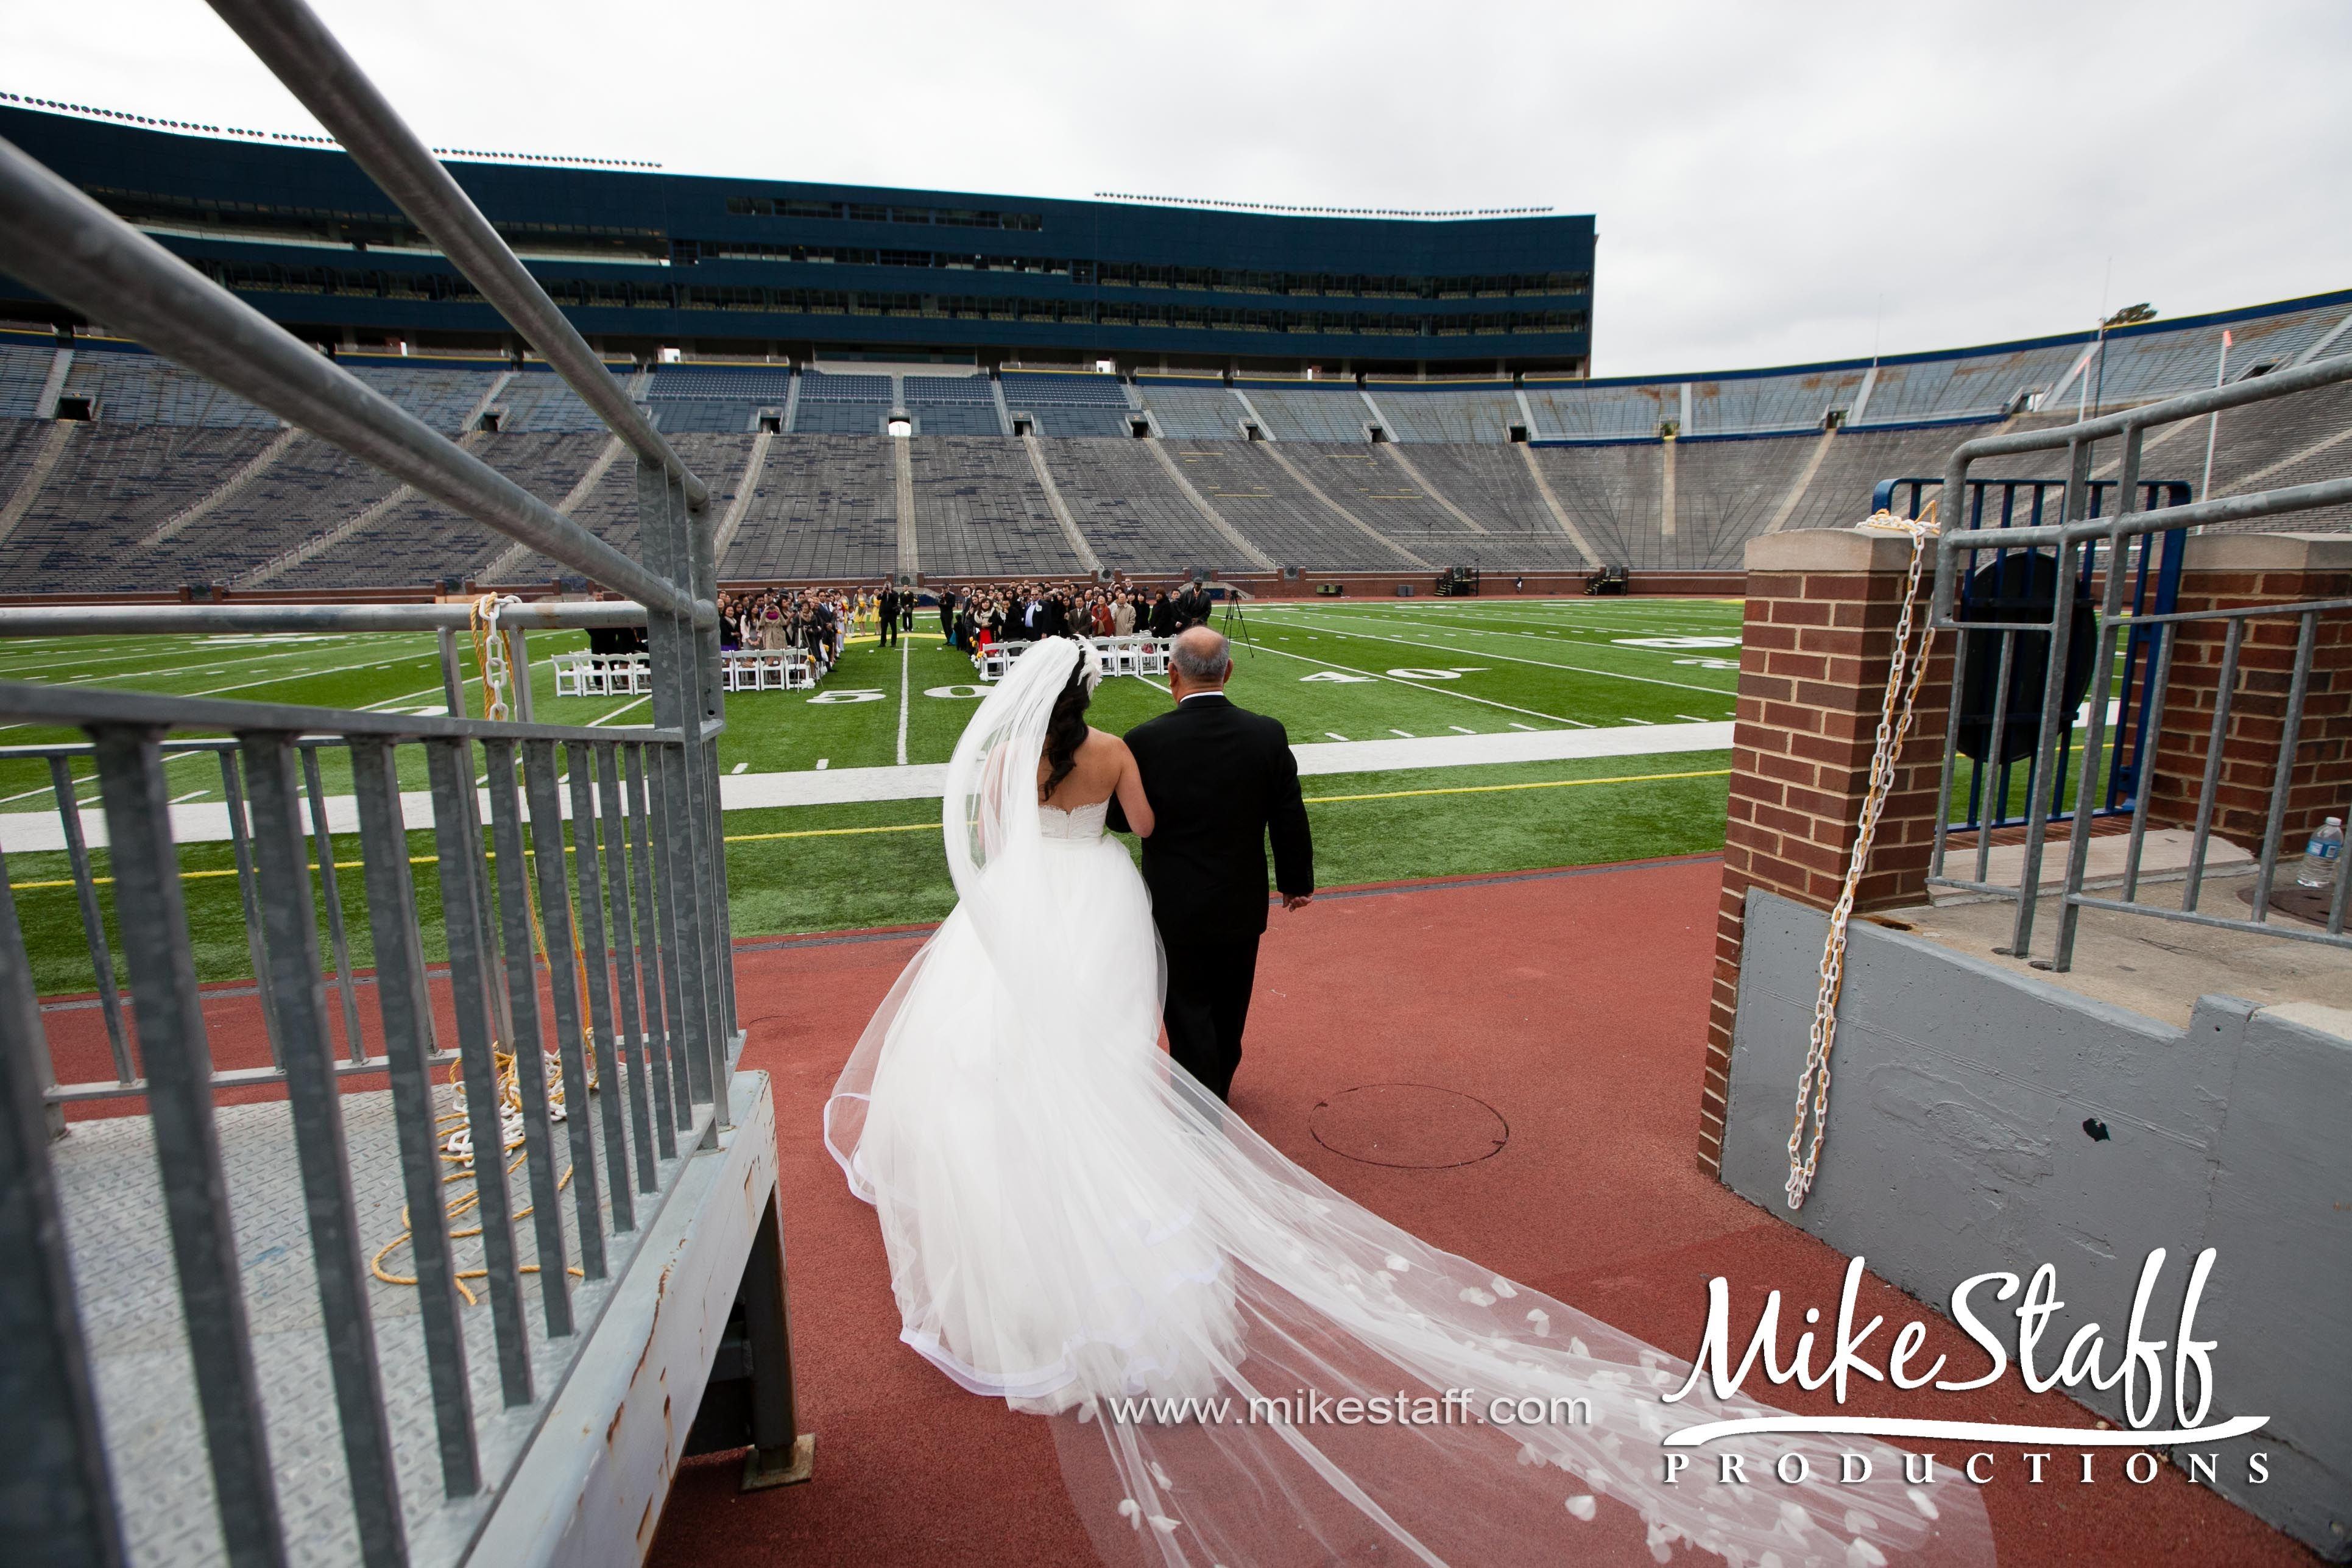 #Michigan wedding #Chicago wedding #Mike Staff Productions #wedding details #wedding photography #wedding dj #wedding videography #wedding photos #wedding pictures #wedding ceremony #U of M wedding